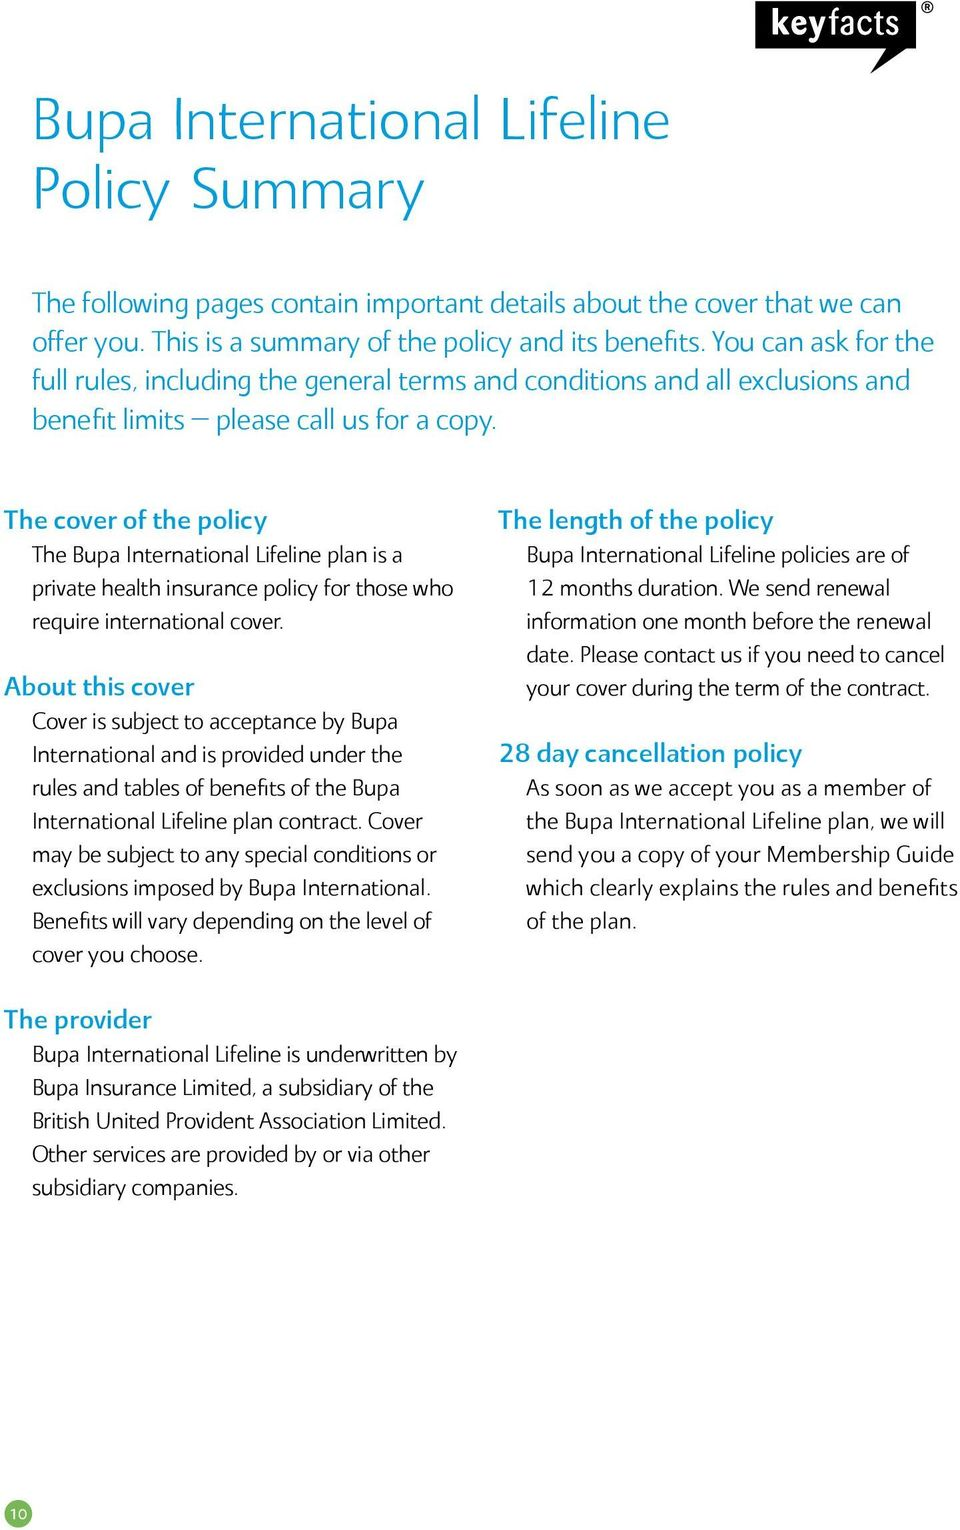 The cover of the policy The Bupa International Lifeline plan is a private health insurance policy for those who require international cover.